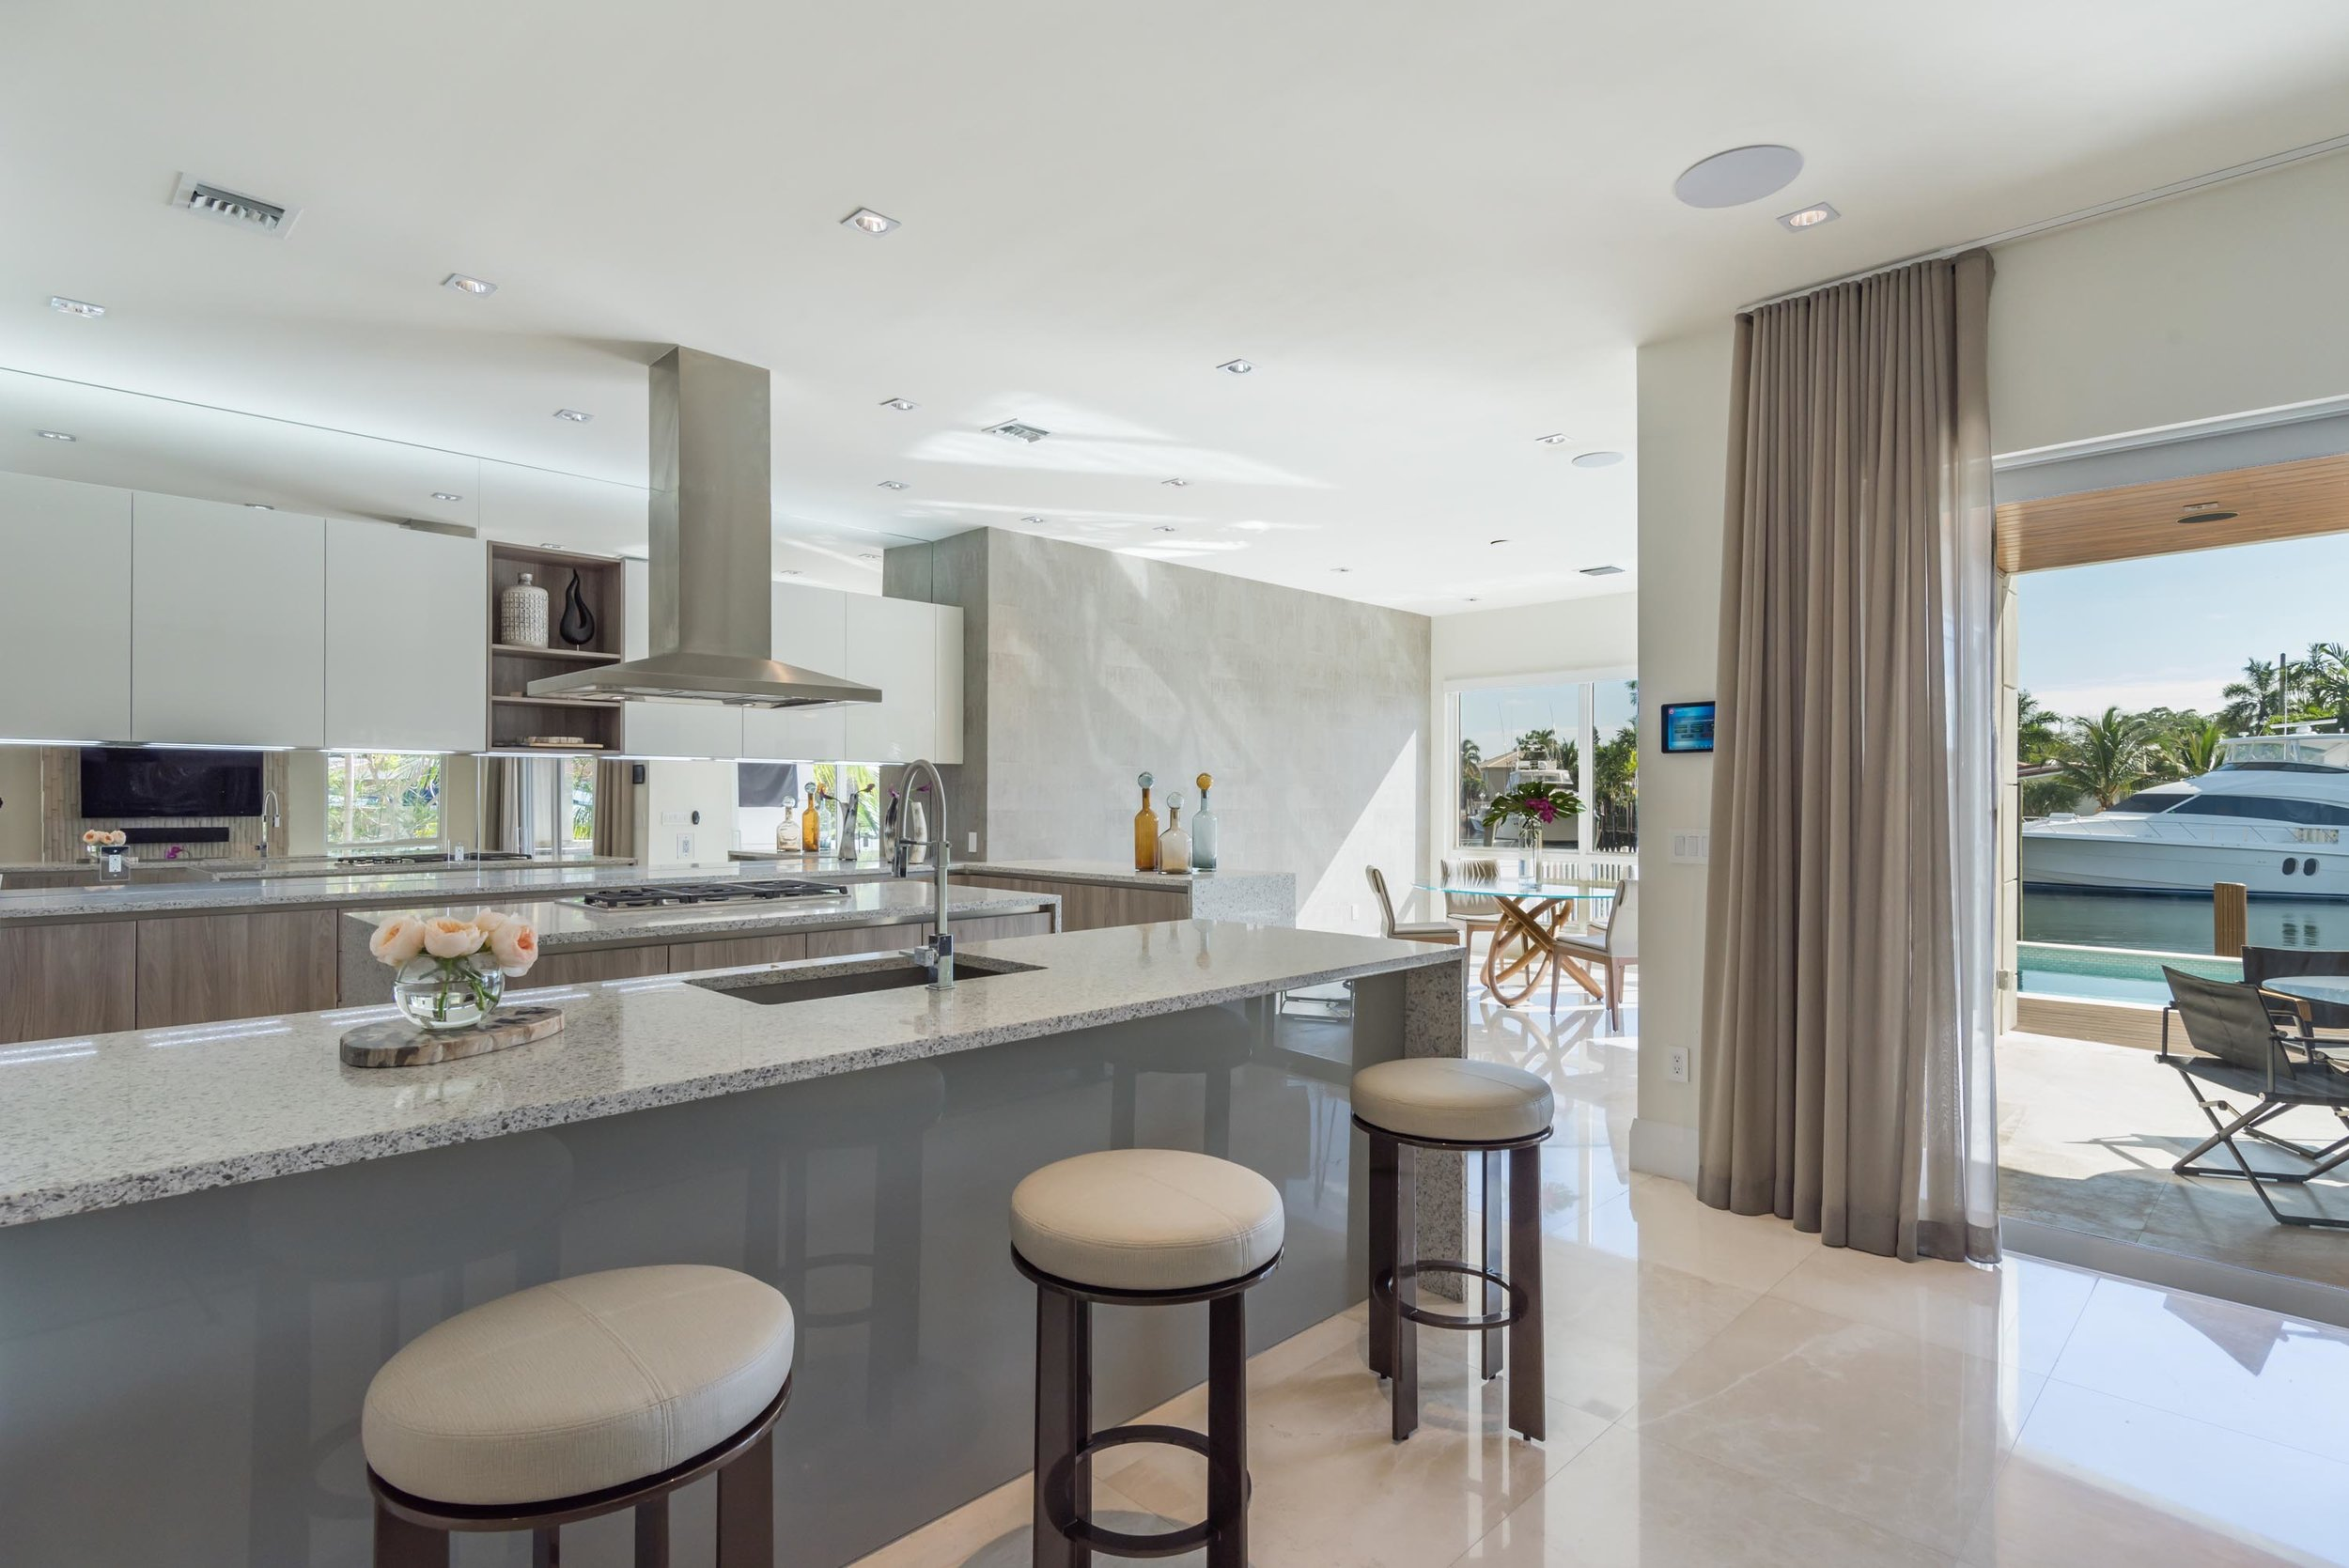 Waterfront modern kitchen area with ceramic countertop, curtain, bar stools, exhaust hood, ceramic tile floor and cabinet